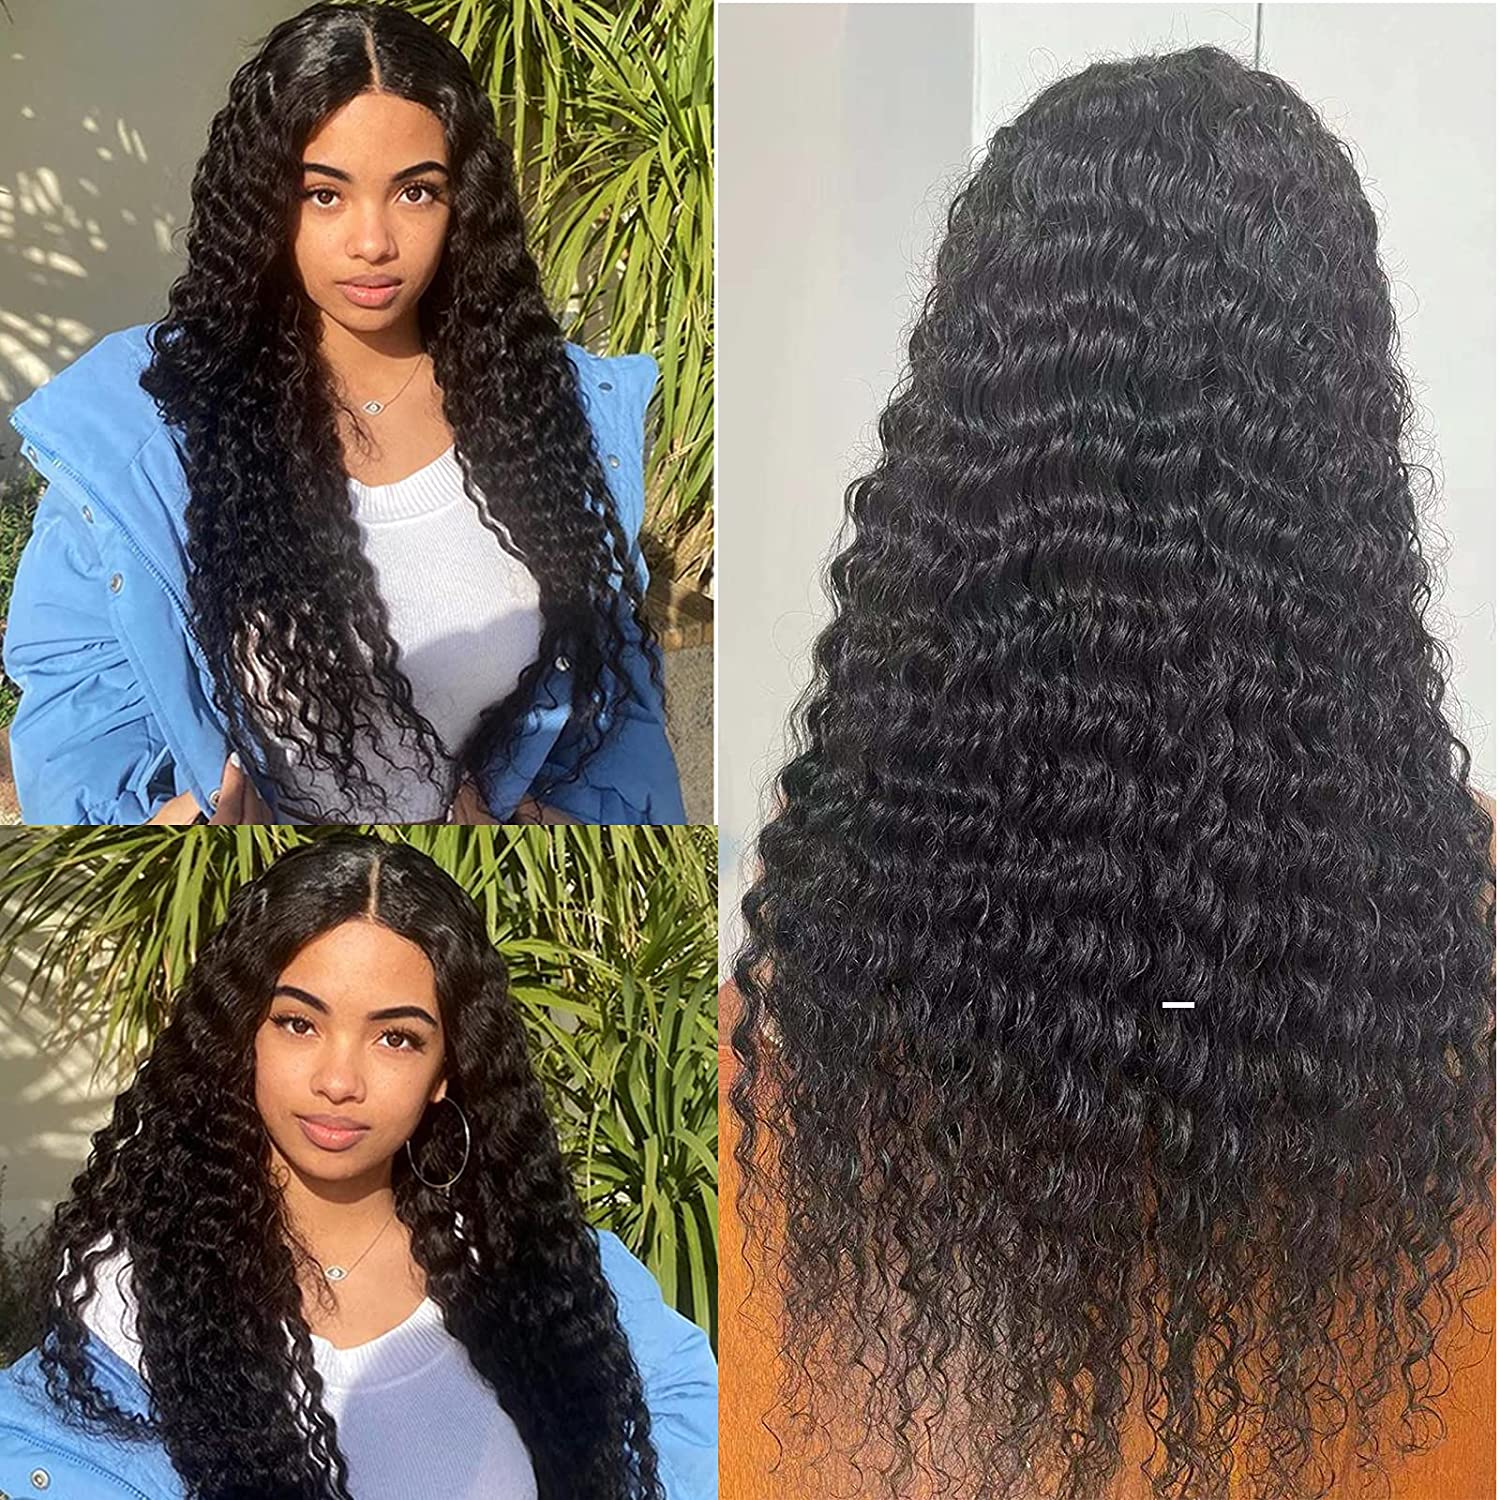 Human Hair Deep Wave At the price Wigs 4 years warranty for Lace Closure B 4x4